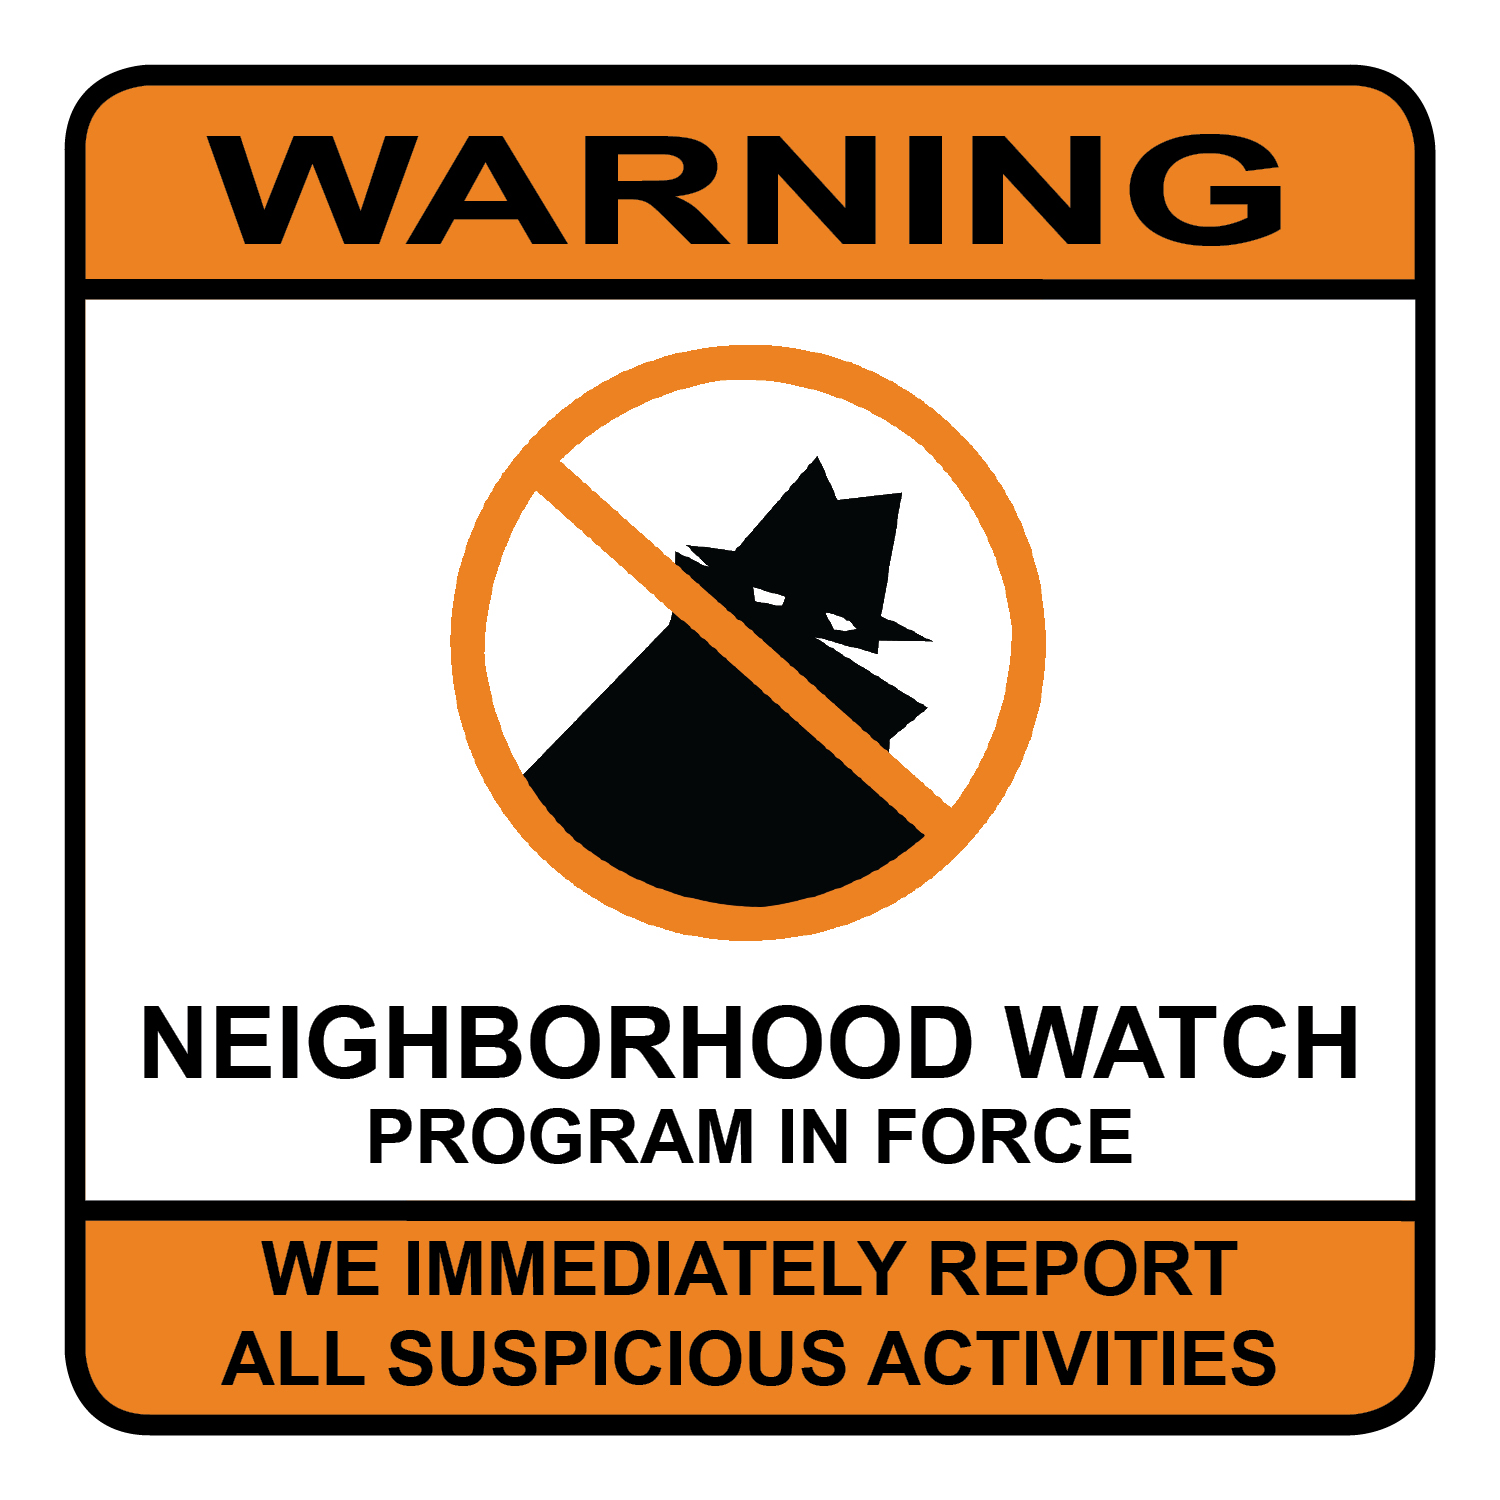 PHOTO: Neighborhood watch logo. (Photo Courtesy of Cape Coral Police Department)